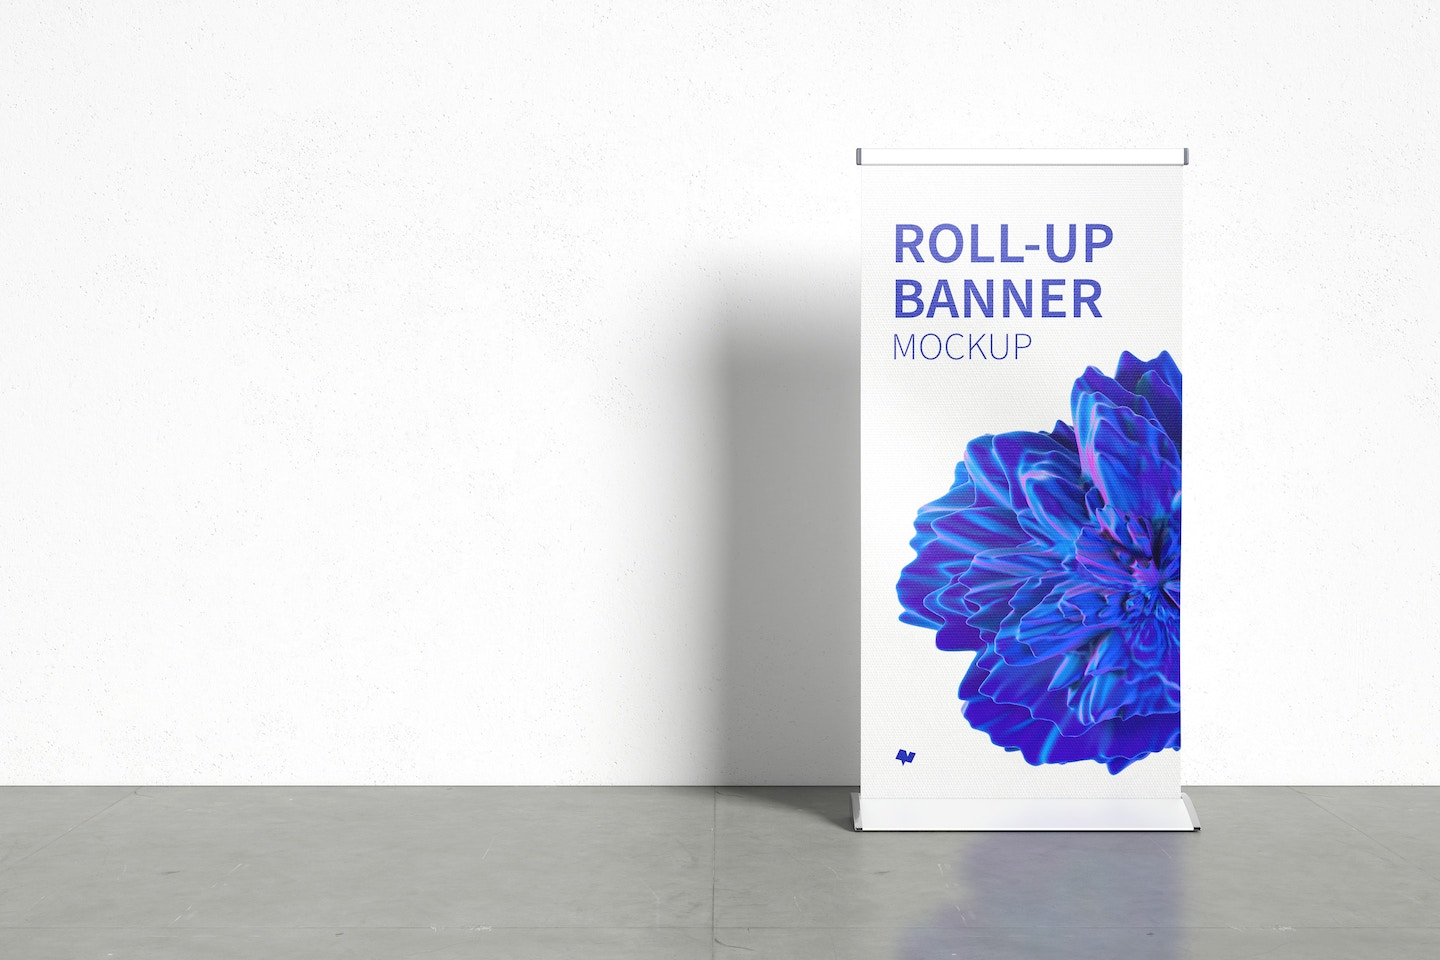 Standing Roll-Up Banner Mockup with a Background Wall, Front View